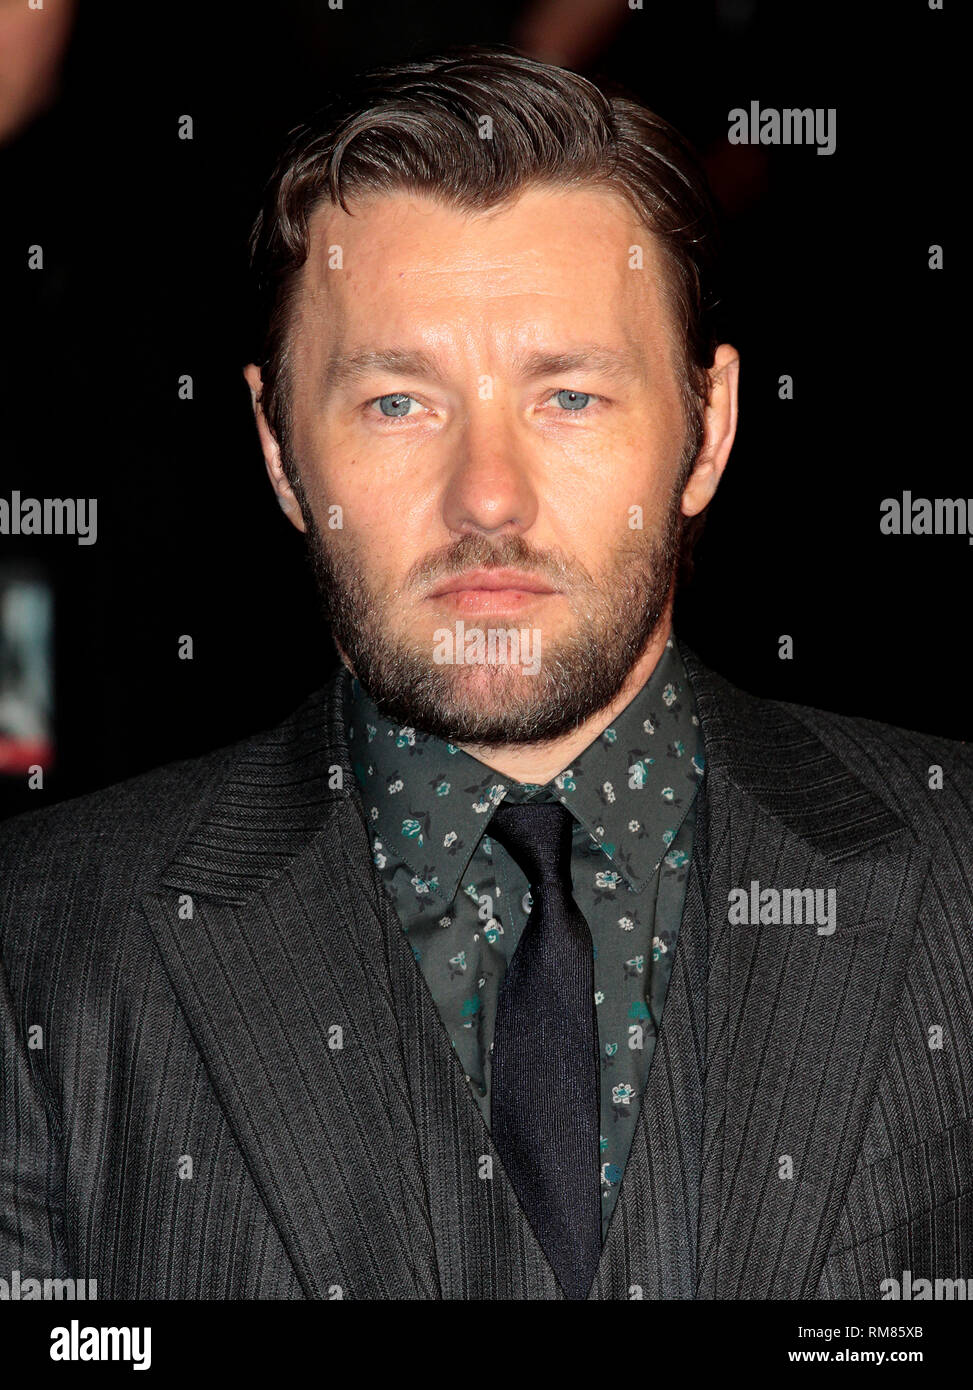 Dec 3, 2014 - Exodus: Gods And Kings World Premiere - VIP Red Carpet Arrivals at Odeon,  Leicester Square, London Pictured: Joel Edgerton - Stock Image